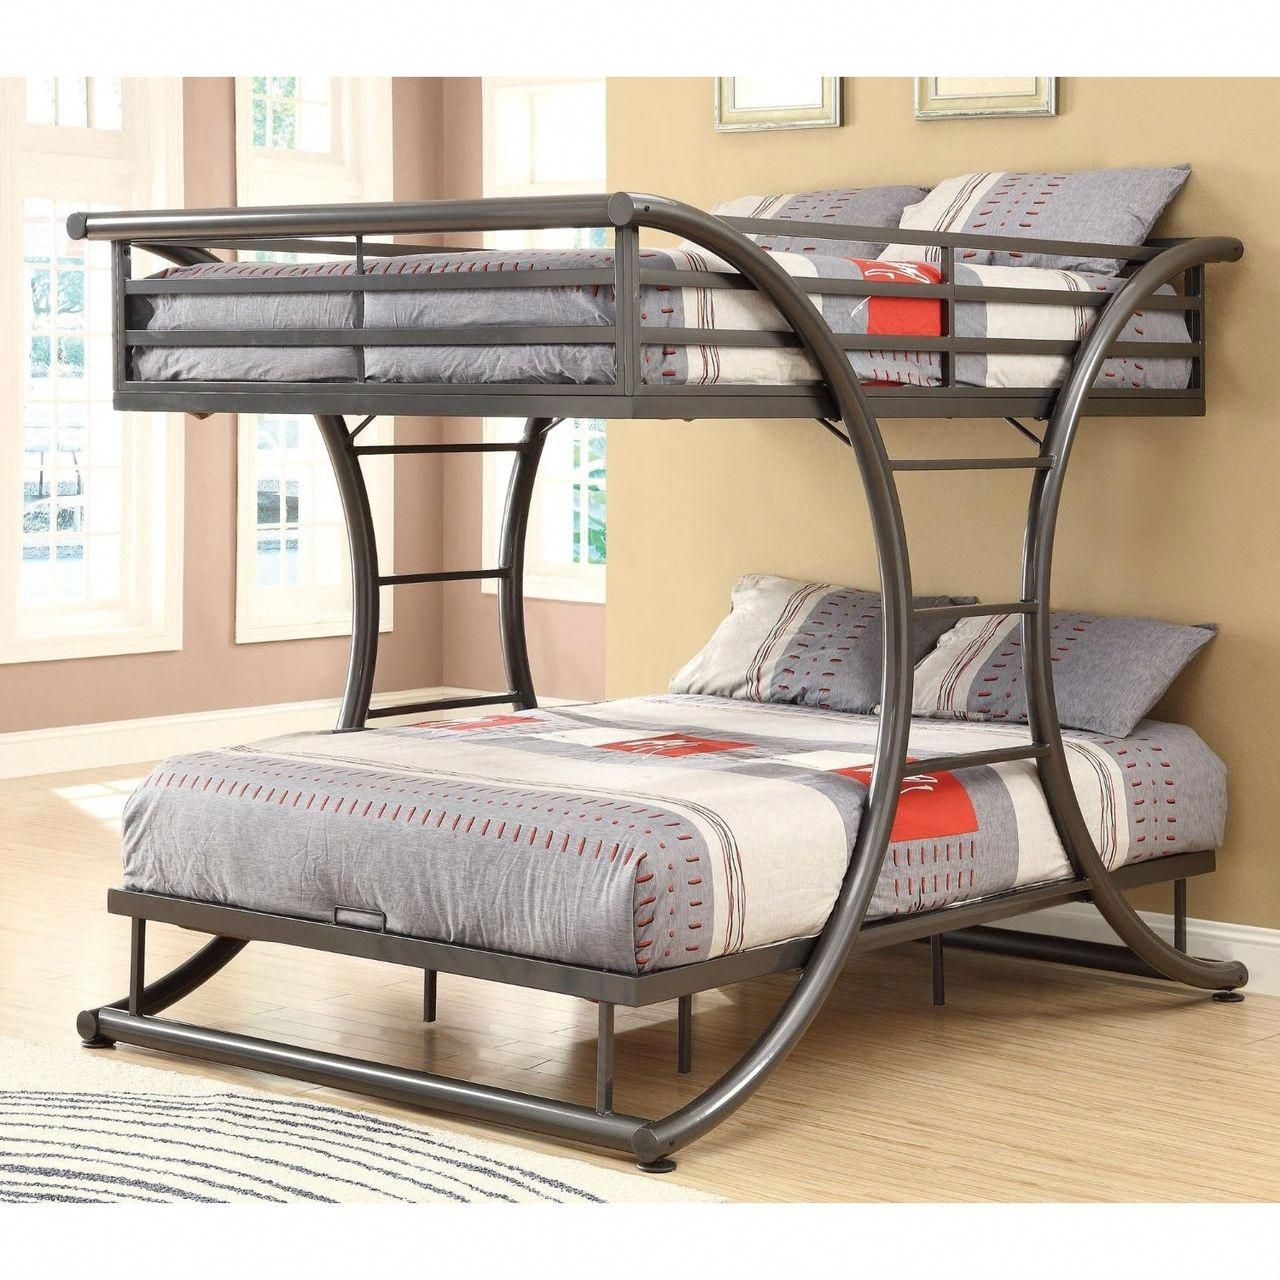 Receive Fantastic Ideas On Modern Bunk Beds For Adults They Are Available For You On Our Internet Site Cool Bunk Beds Metal Bunk Beds Loft Bed Frame